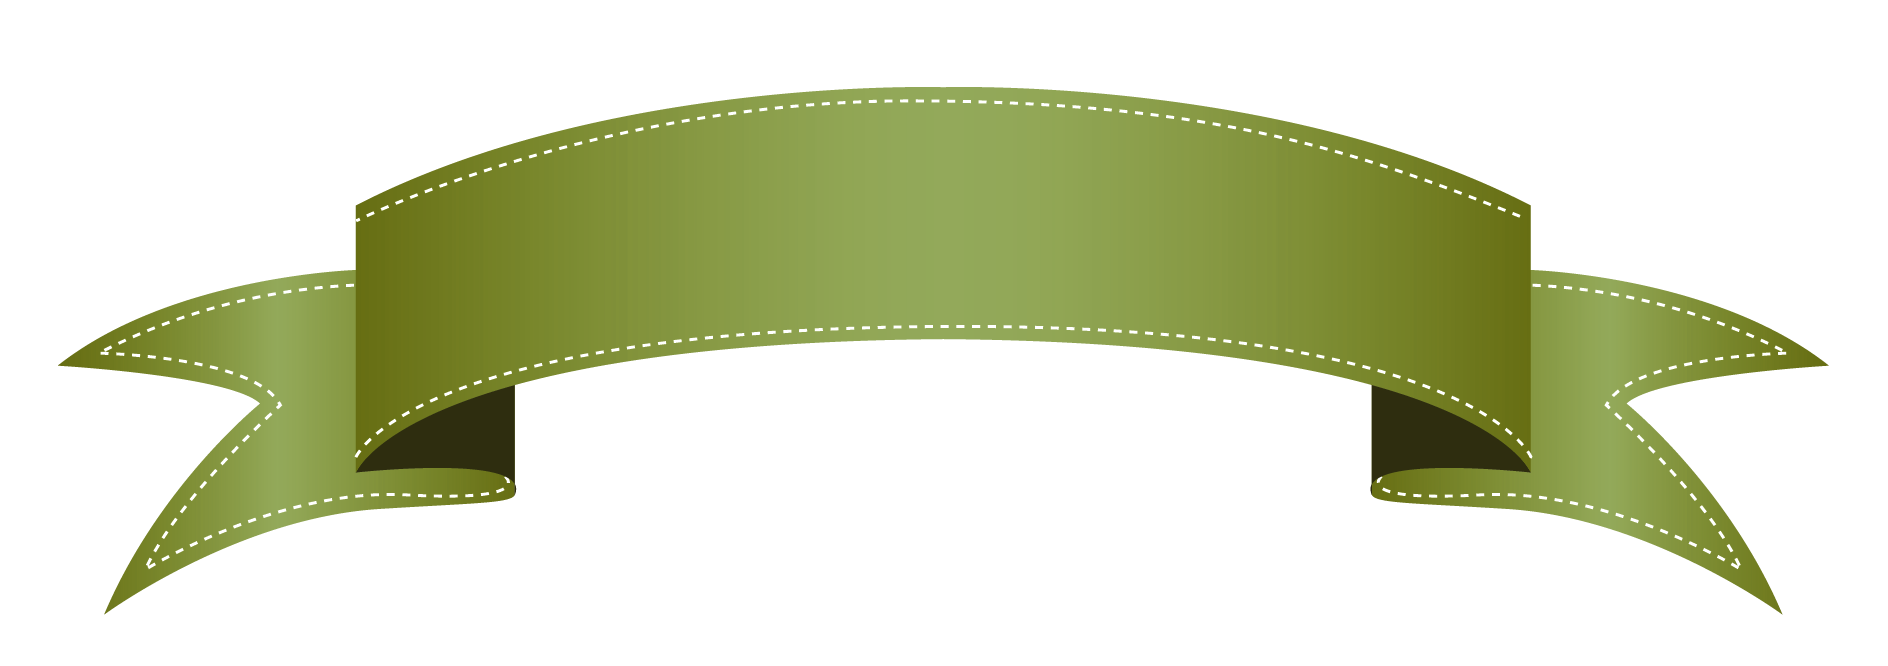 clip stock Green banner clipart nikhil. Banners transparent ribbon